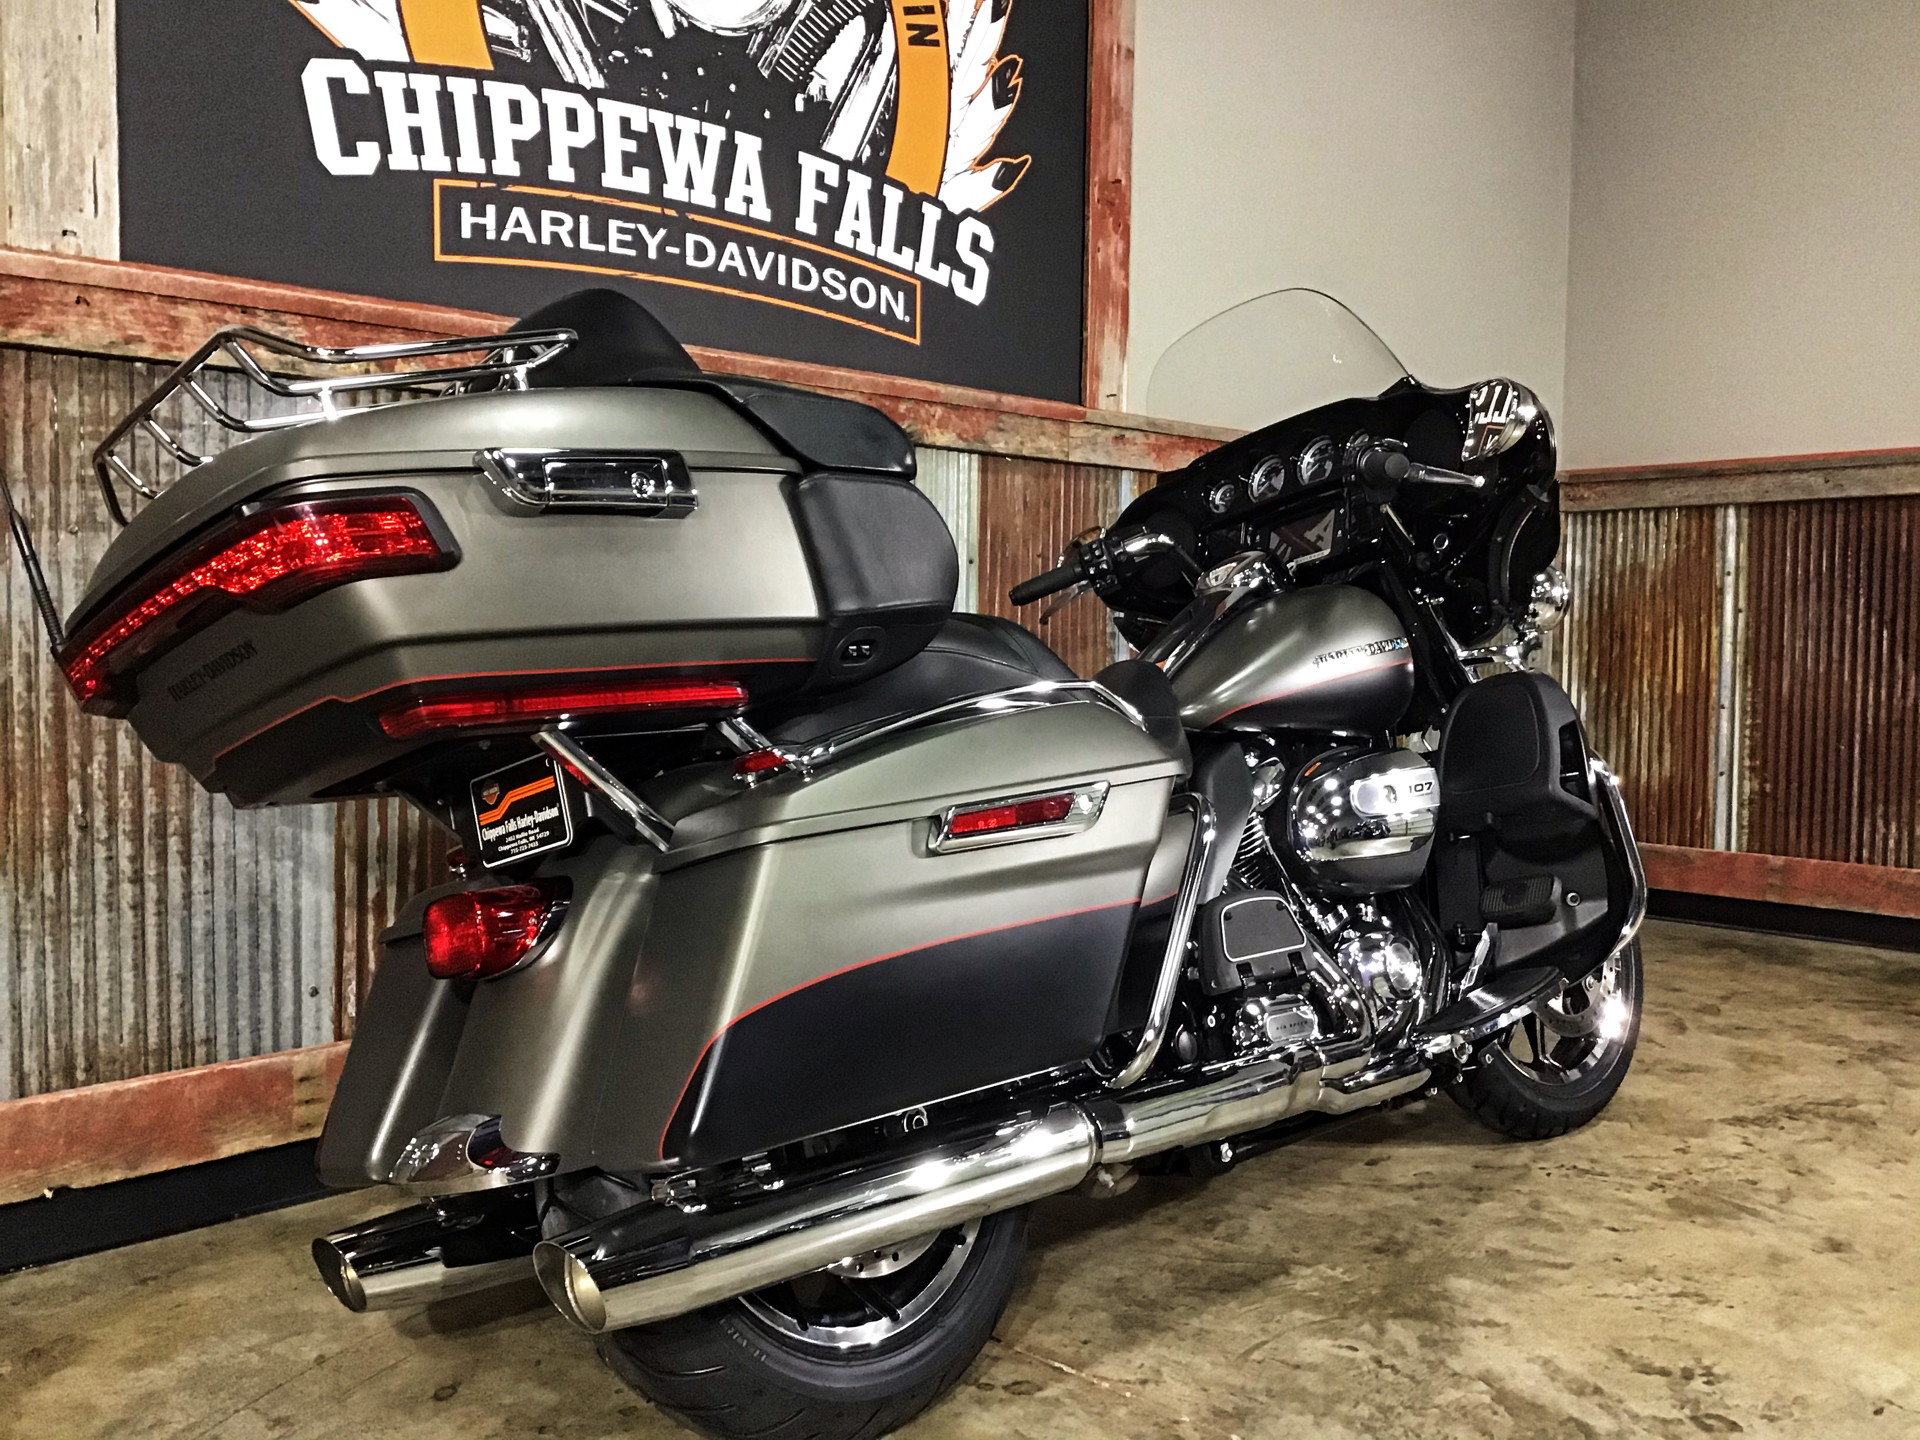 2018 Harley-Davidson Ultra Limited in Chippewa Falls, Wisconsin - Photo 5